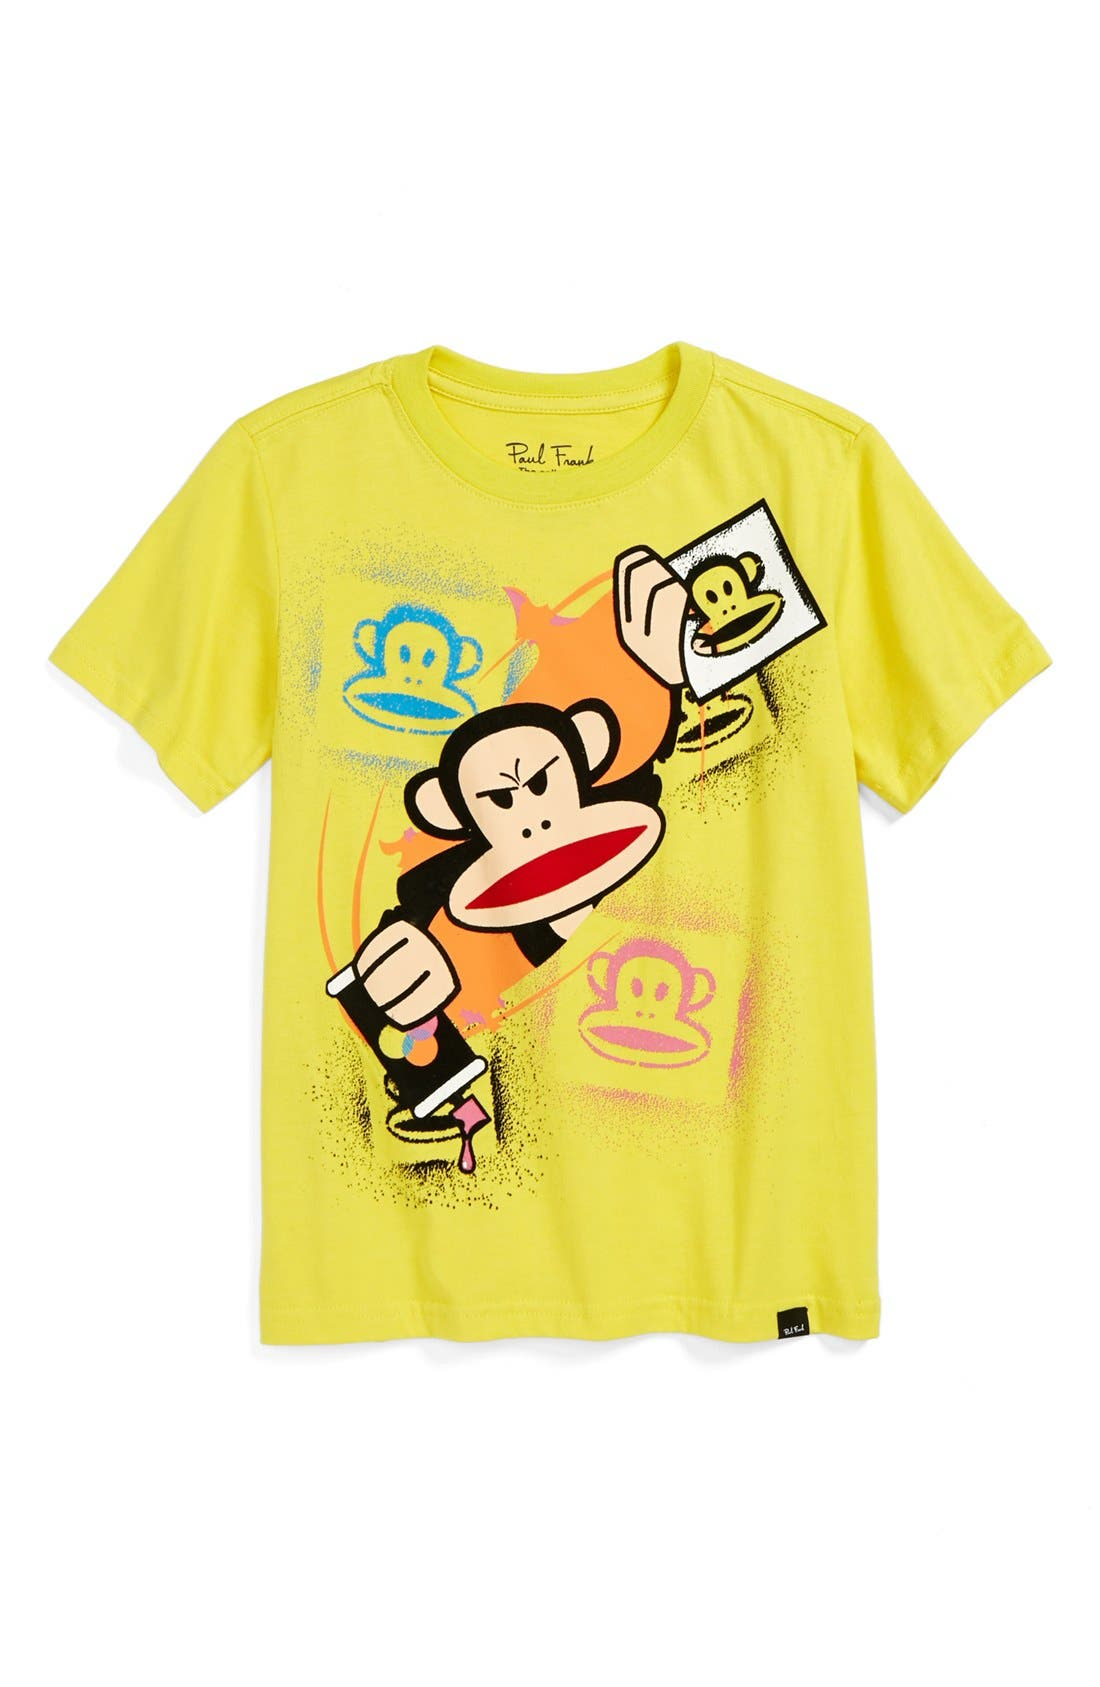 Main Image - Paul Frank 'Stamp' T-Shirt (Little Boys)